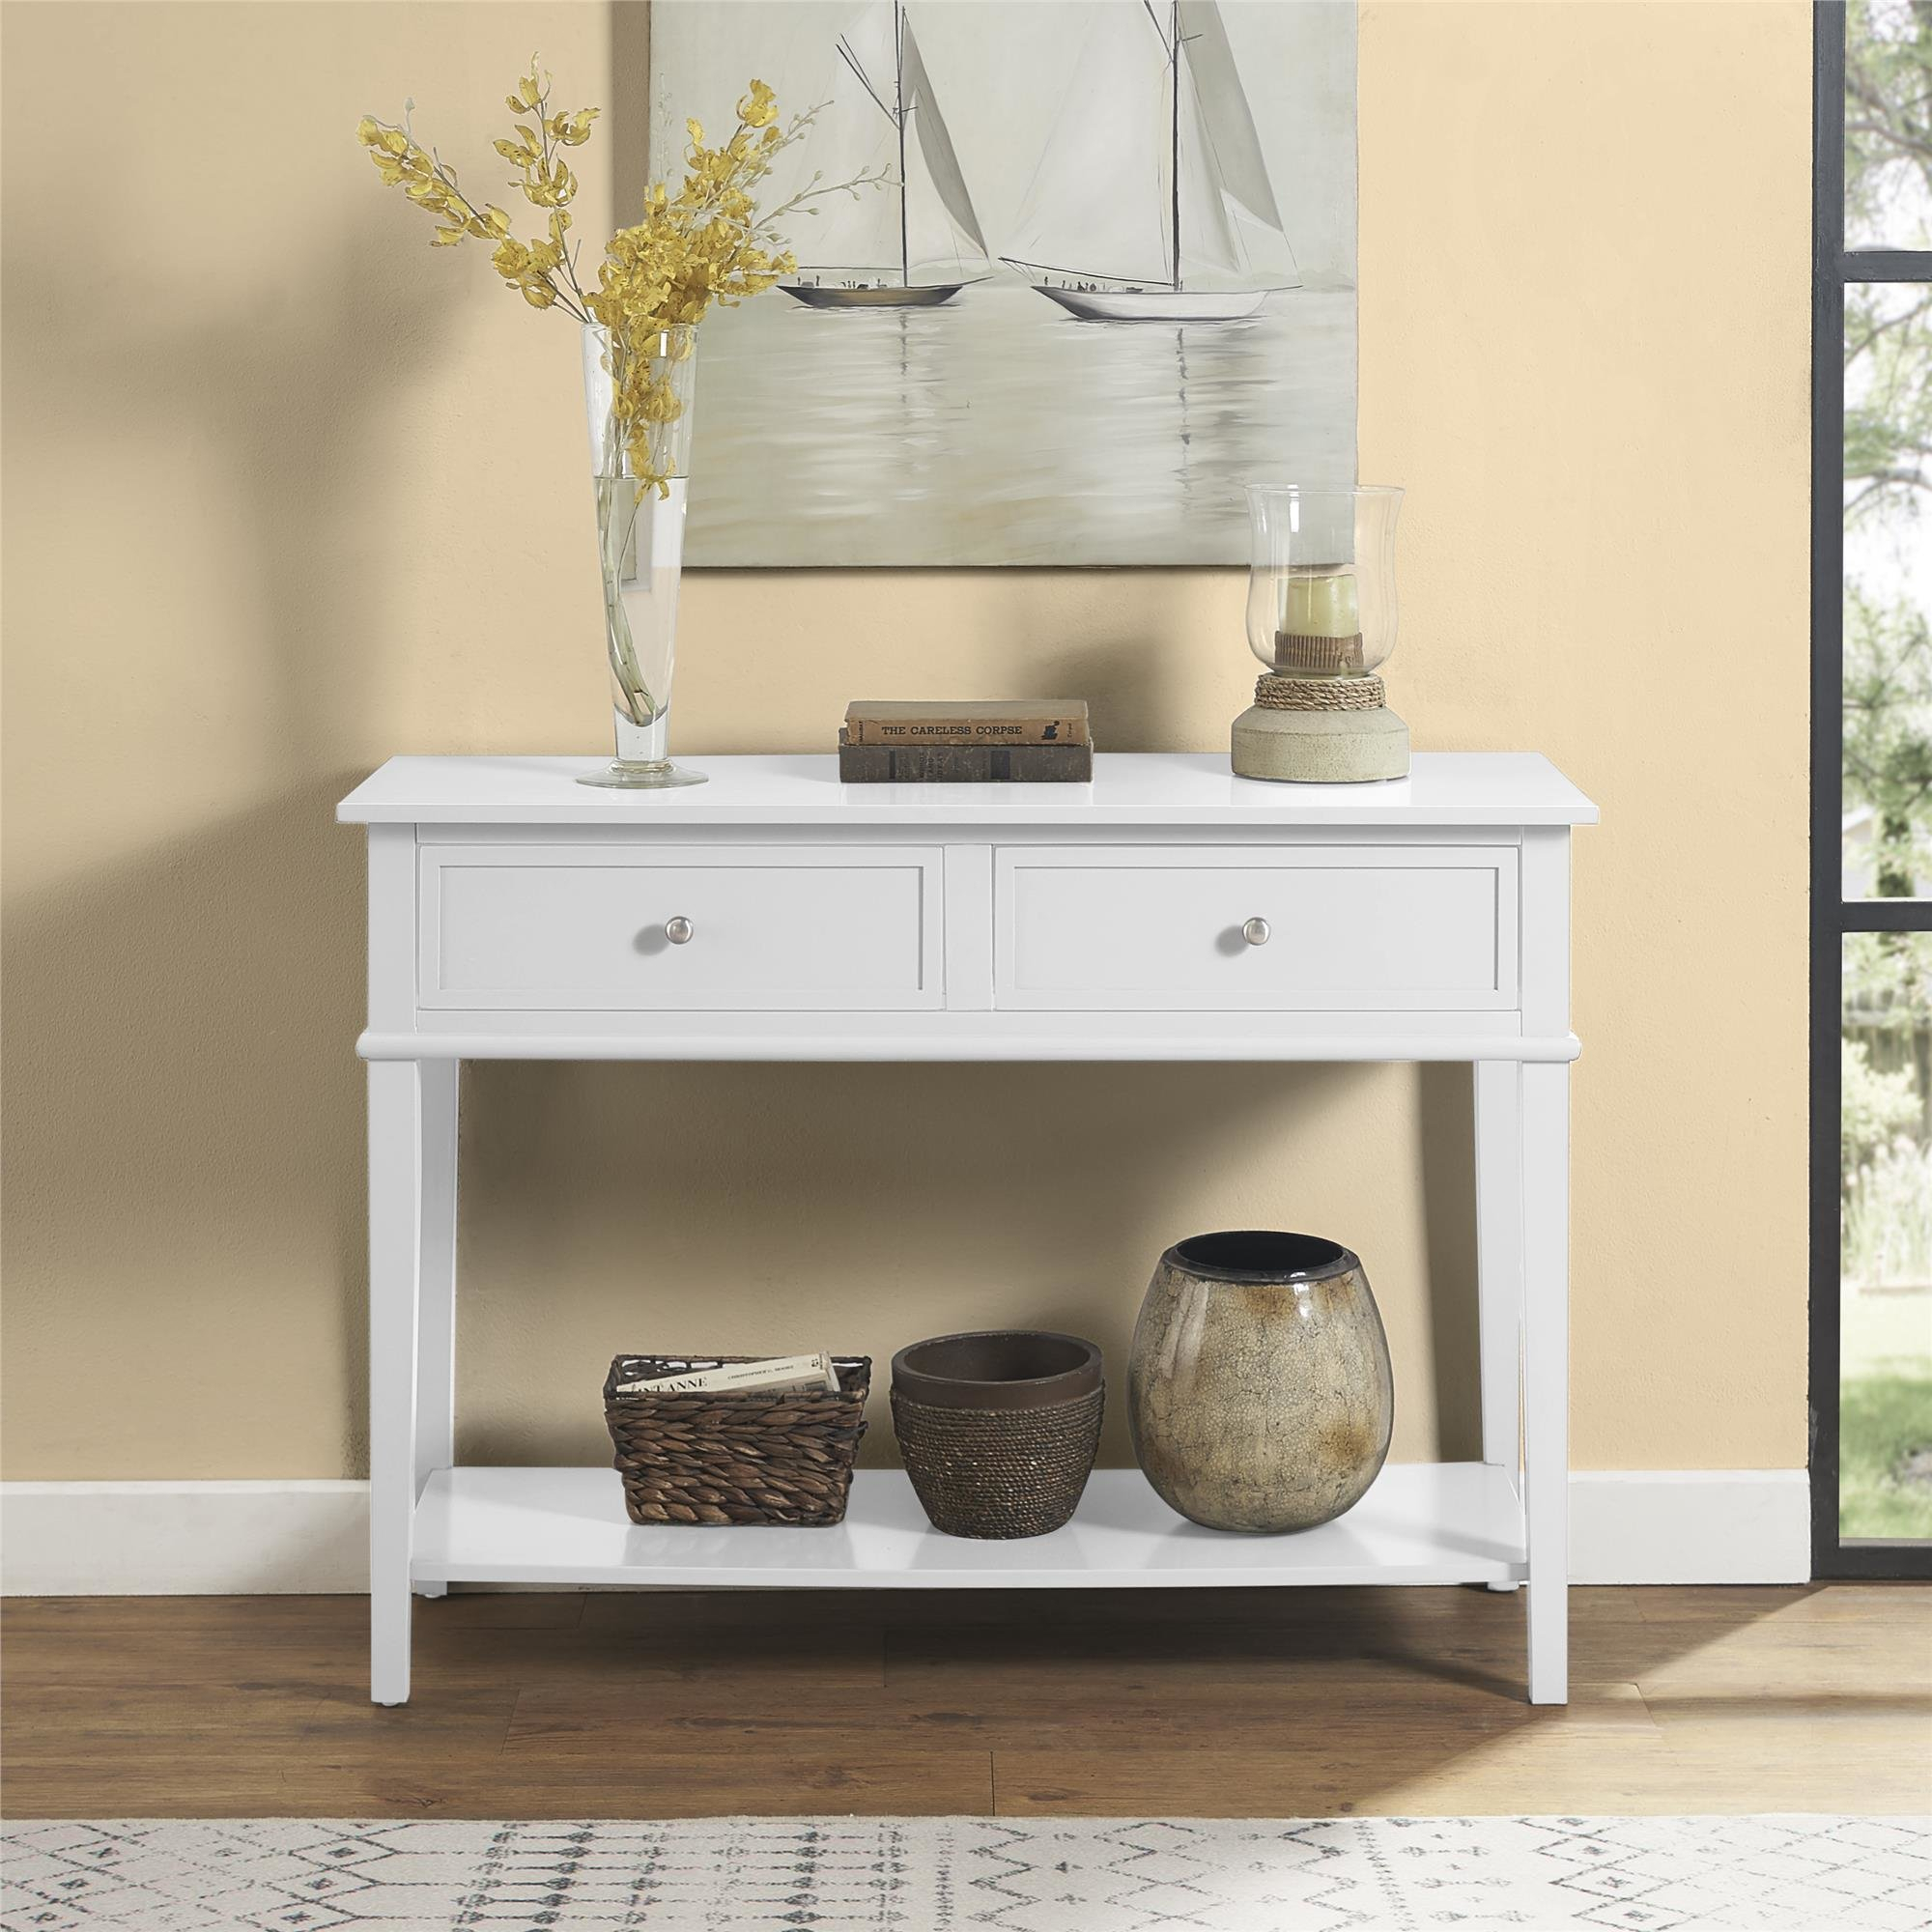 Extra Long Console Table | Wayfair Pertaining To Silviano 60 Inch Console Tables (View 16 of 30)